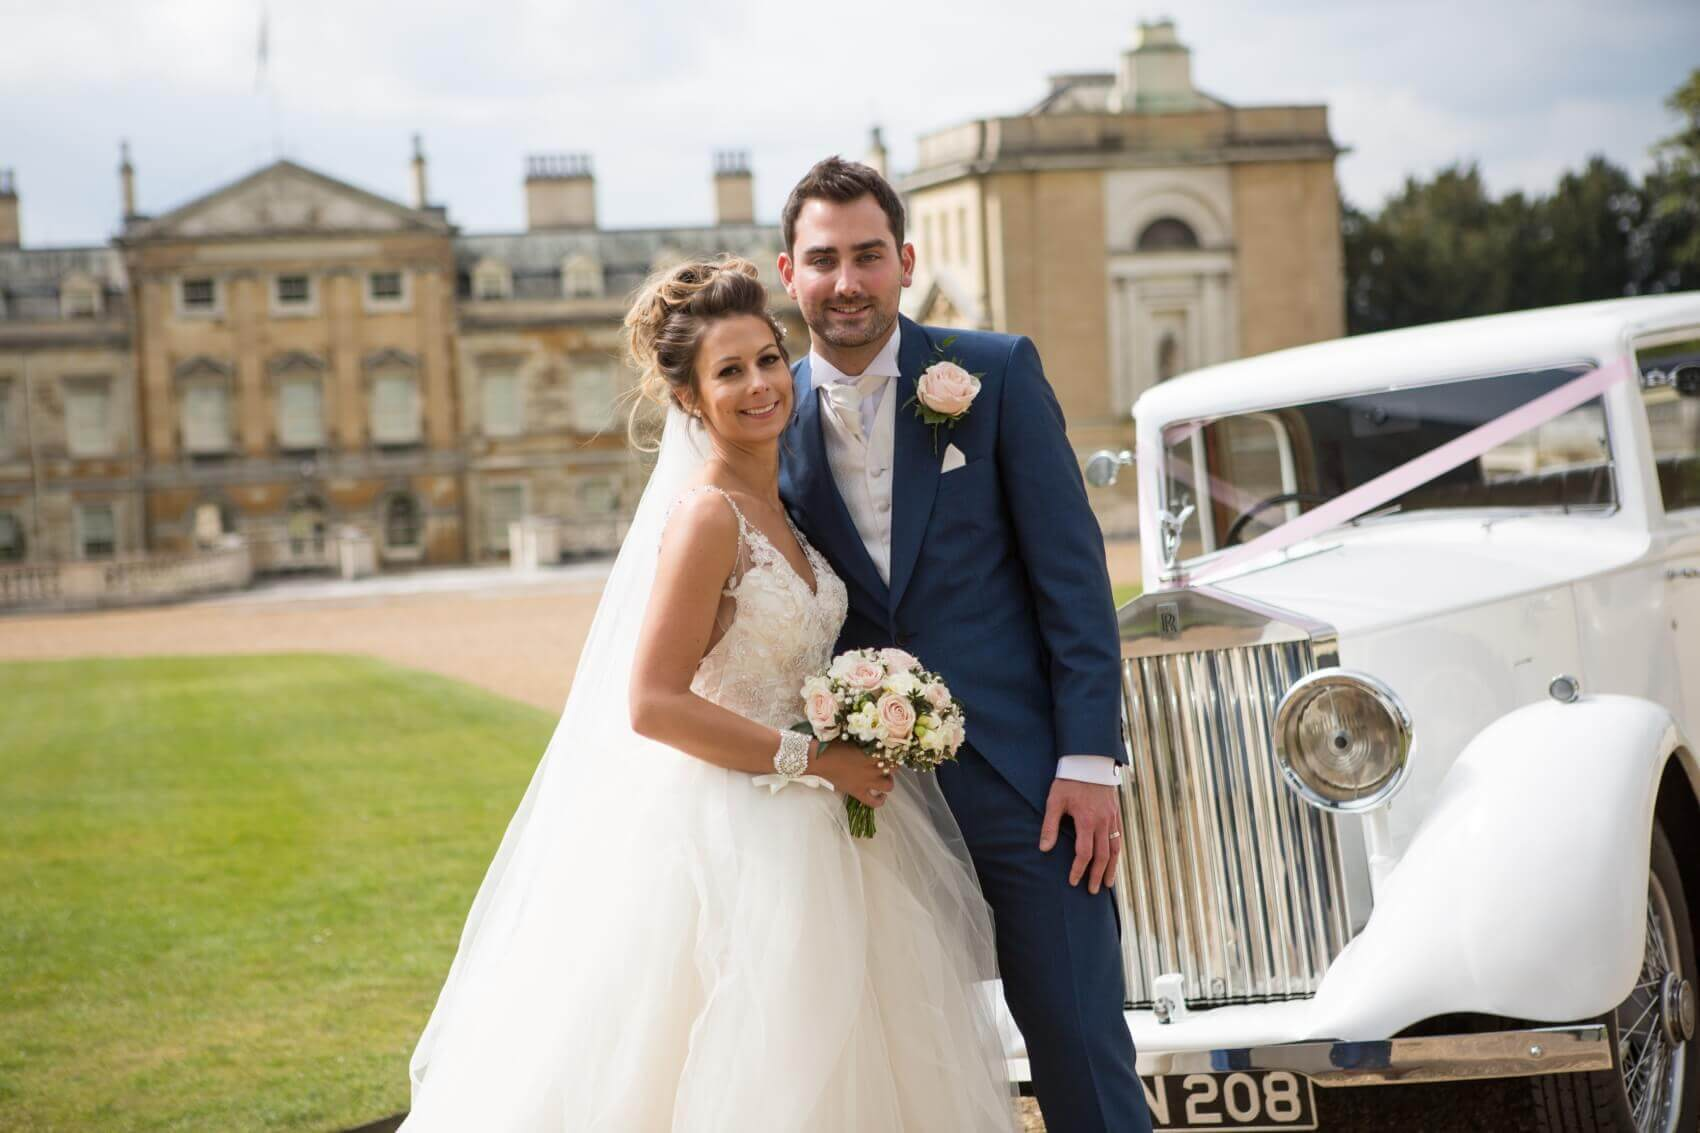 Bedfordshire wedding photographer at The sculpture Gallery in Woburn with the bride and groom and a white vintage wedding car